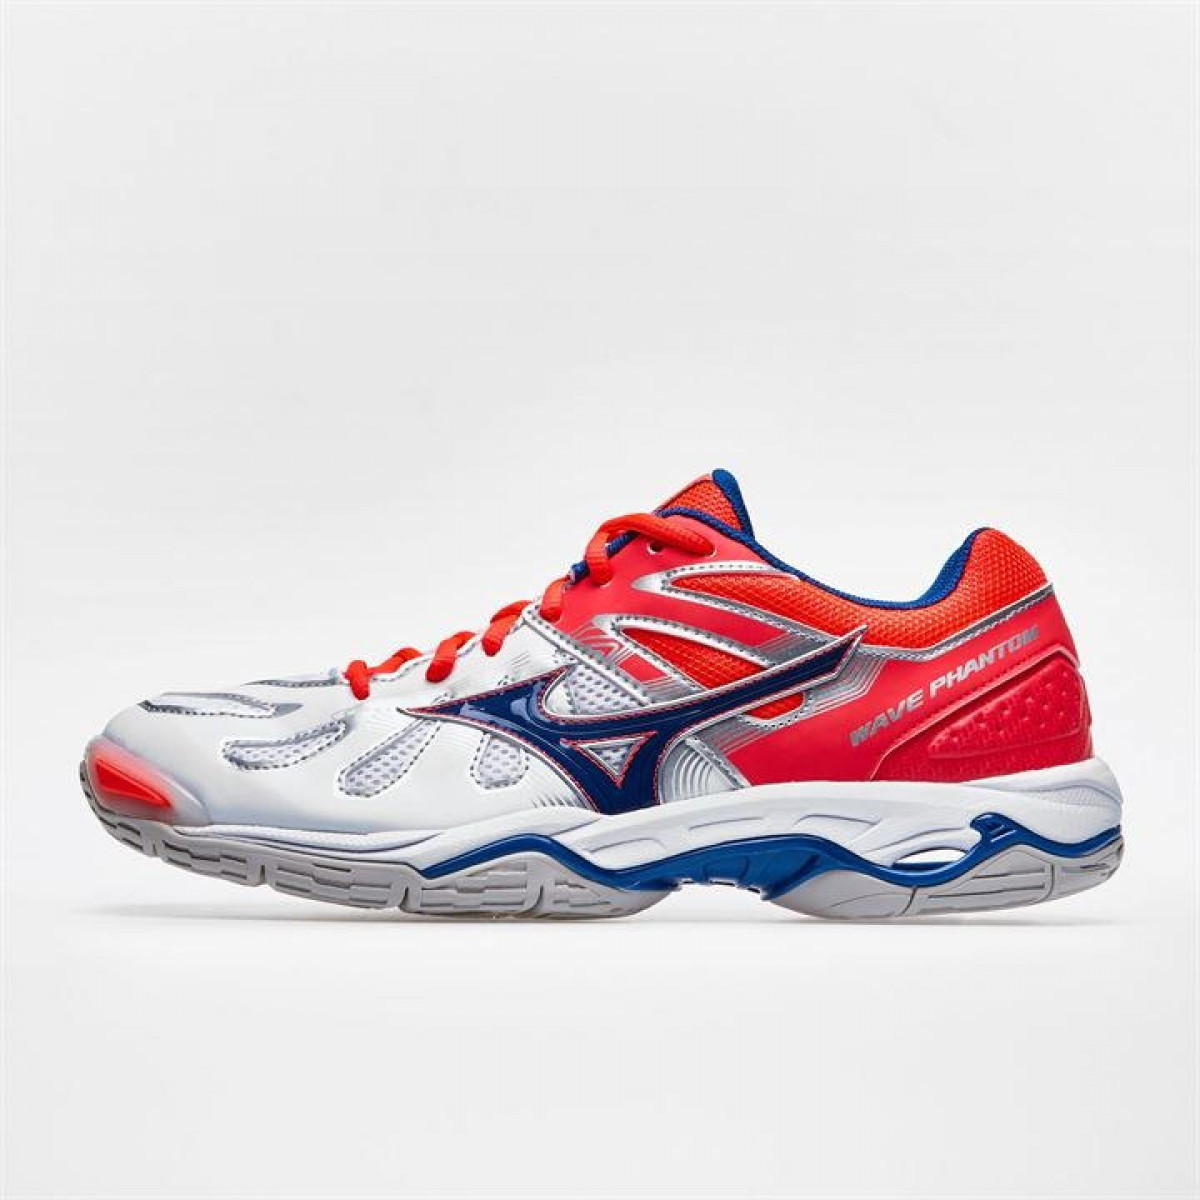 Кроссовки Mizuno Wave NblTrn White - Оригинал, фото 1